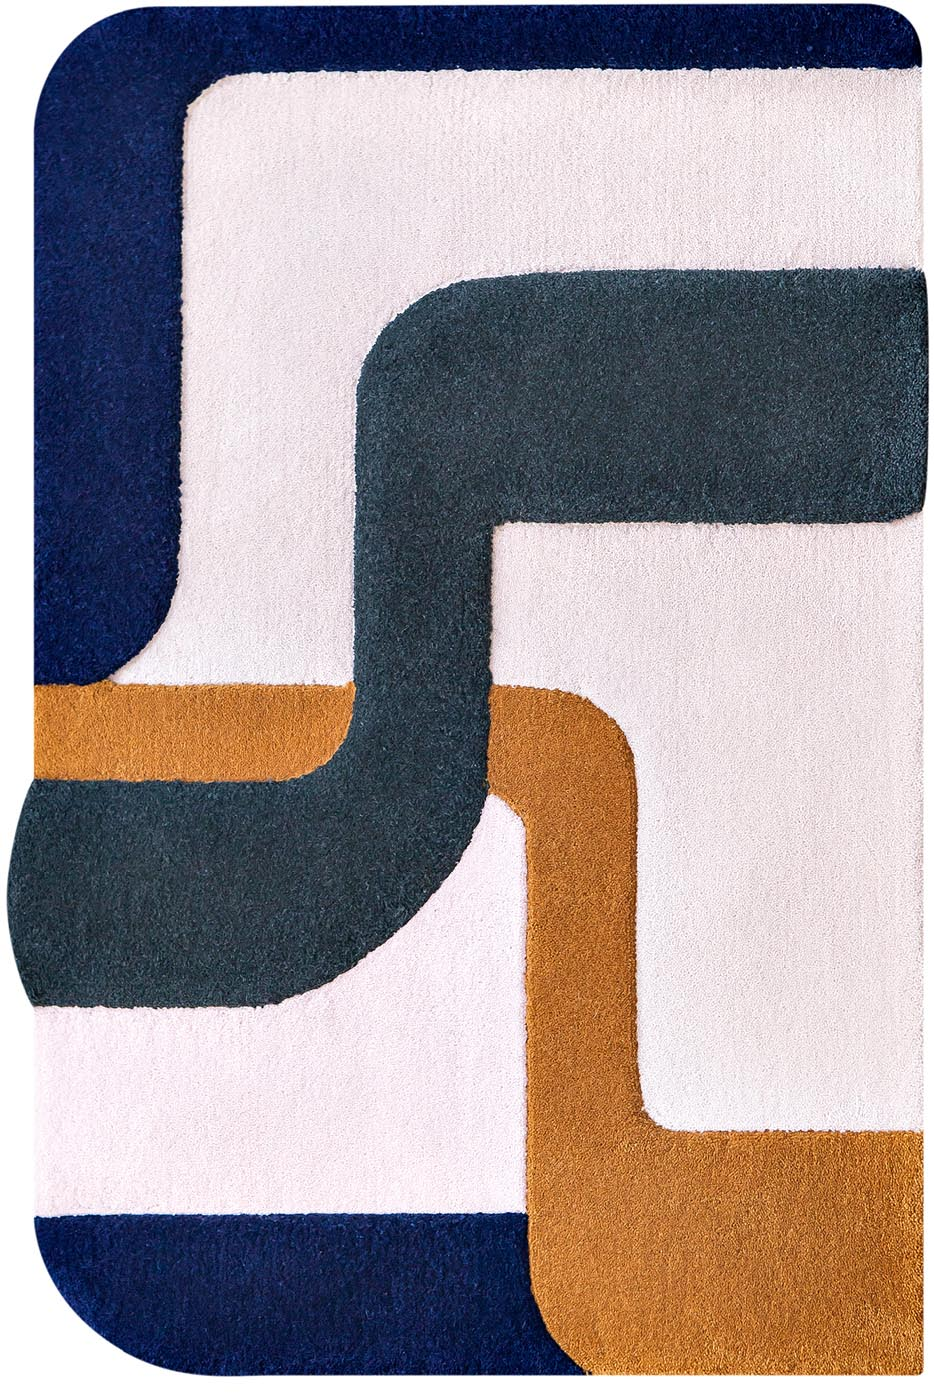 Tapis / Rug Element nomade 3 by Mapoesie Elsa Poux